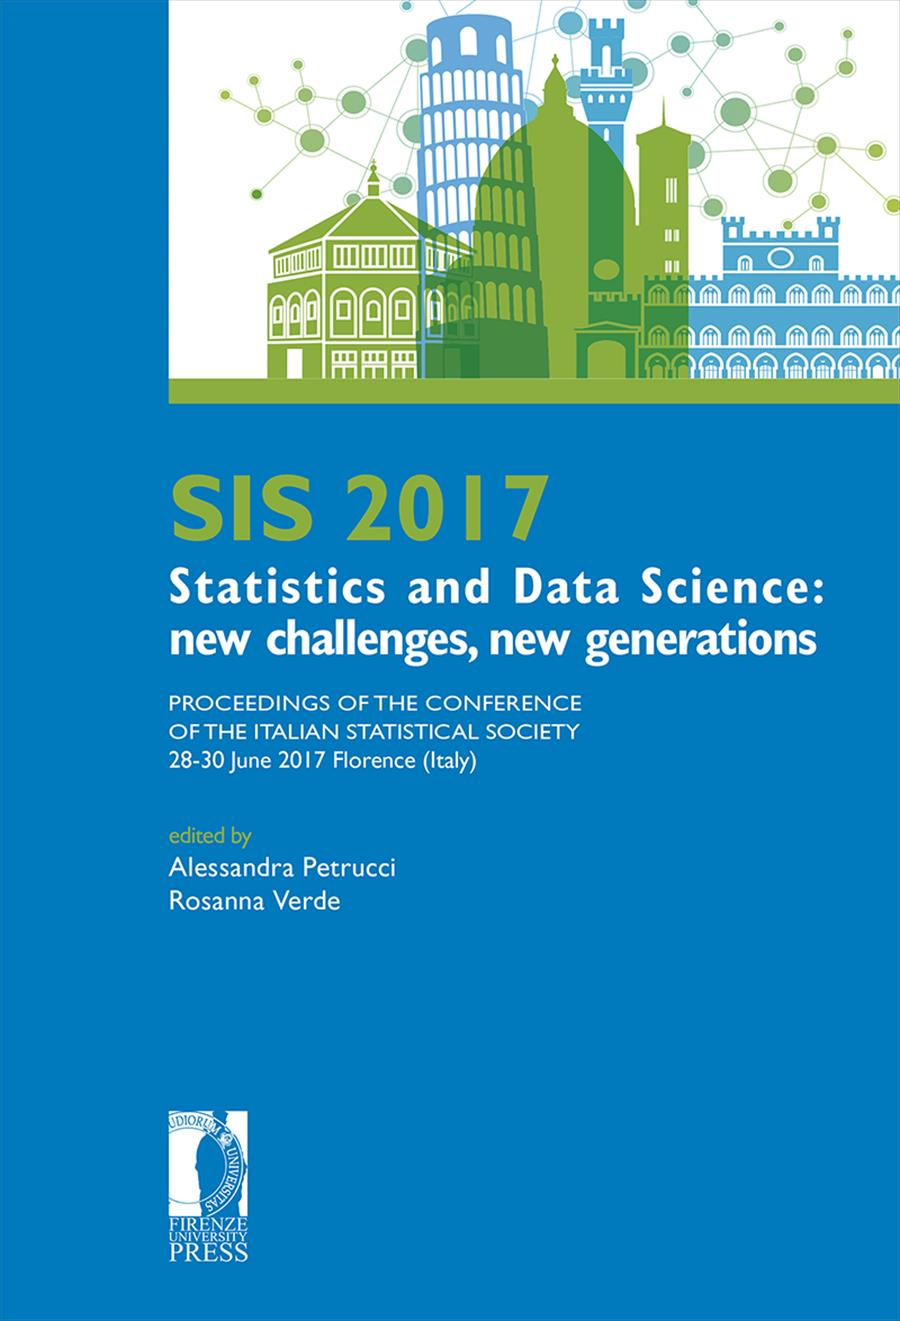 SIS 2017. Statistics and Data Science: new challenges, new generations